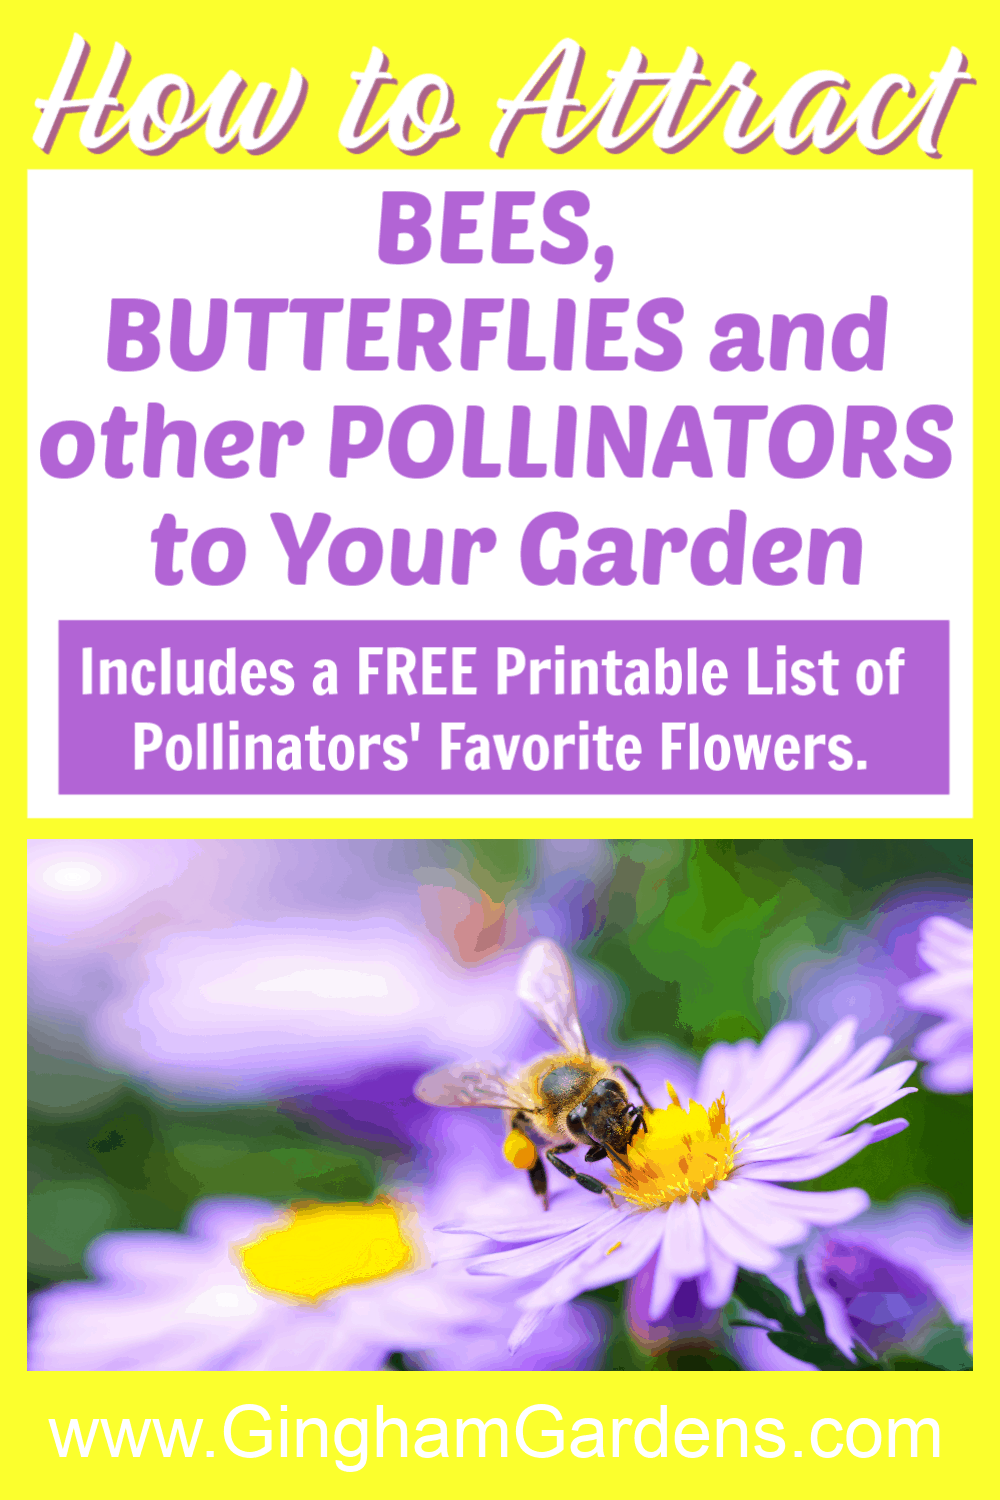 Image of Bee on a Flower with text overlay - how to attract bees, butterflies and other pollinators to your garden